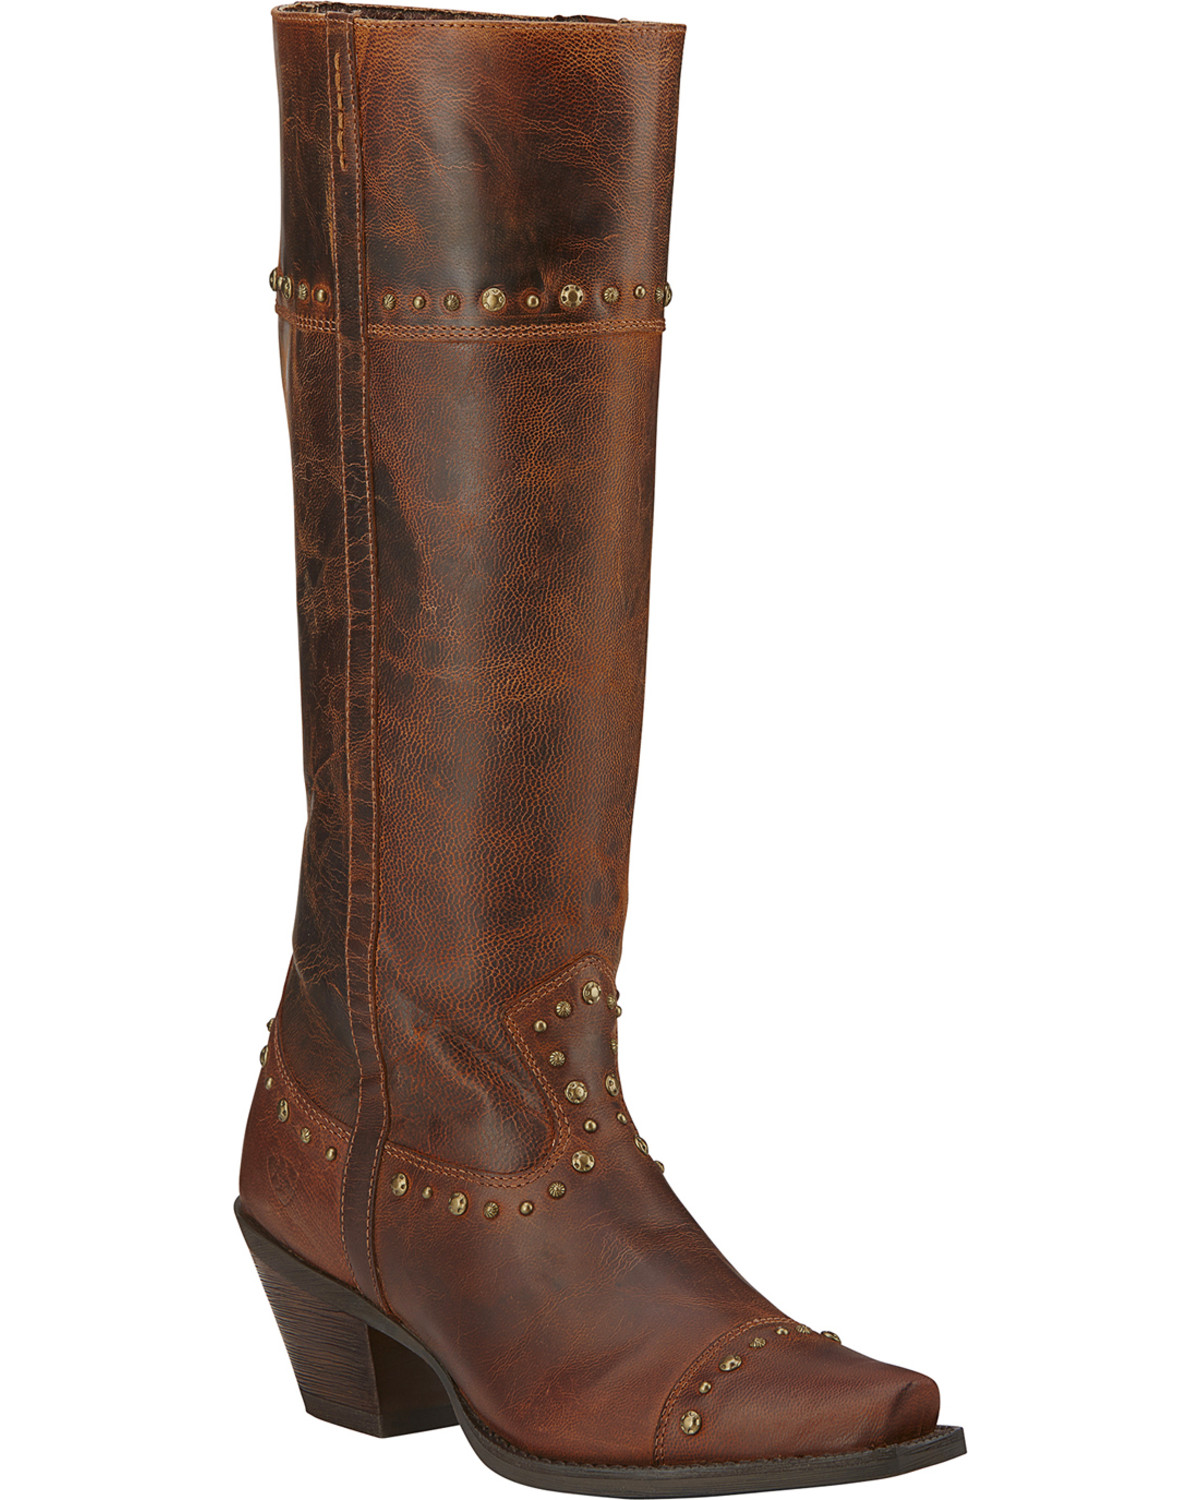 Ariat Marvel Tall Cowgirl Boots - Snip Toe | Sheplers